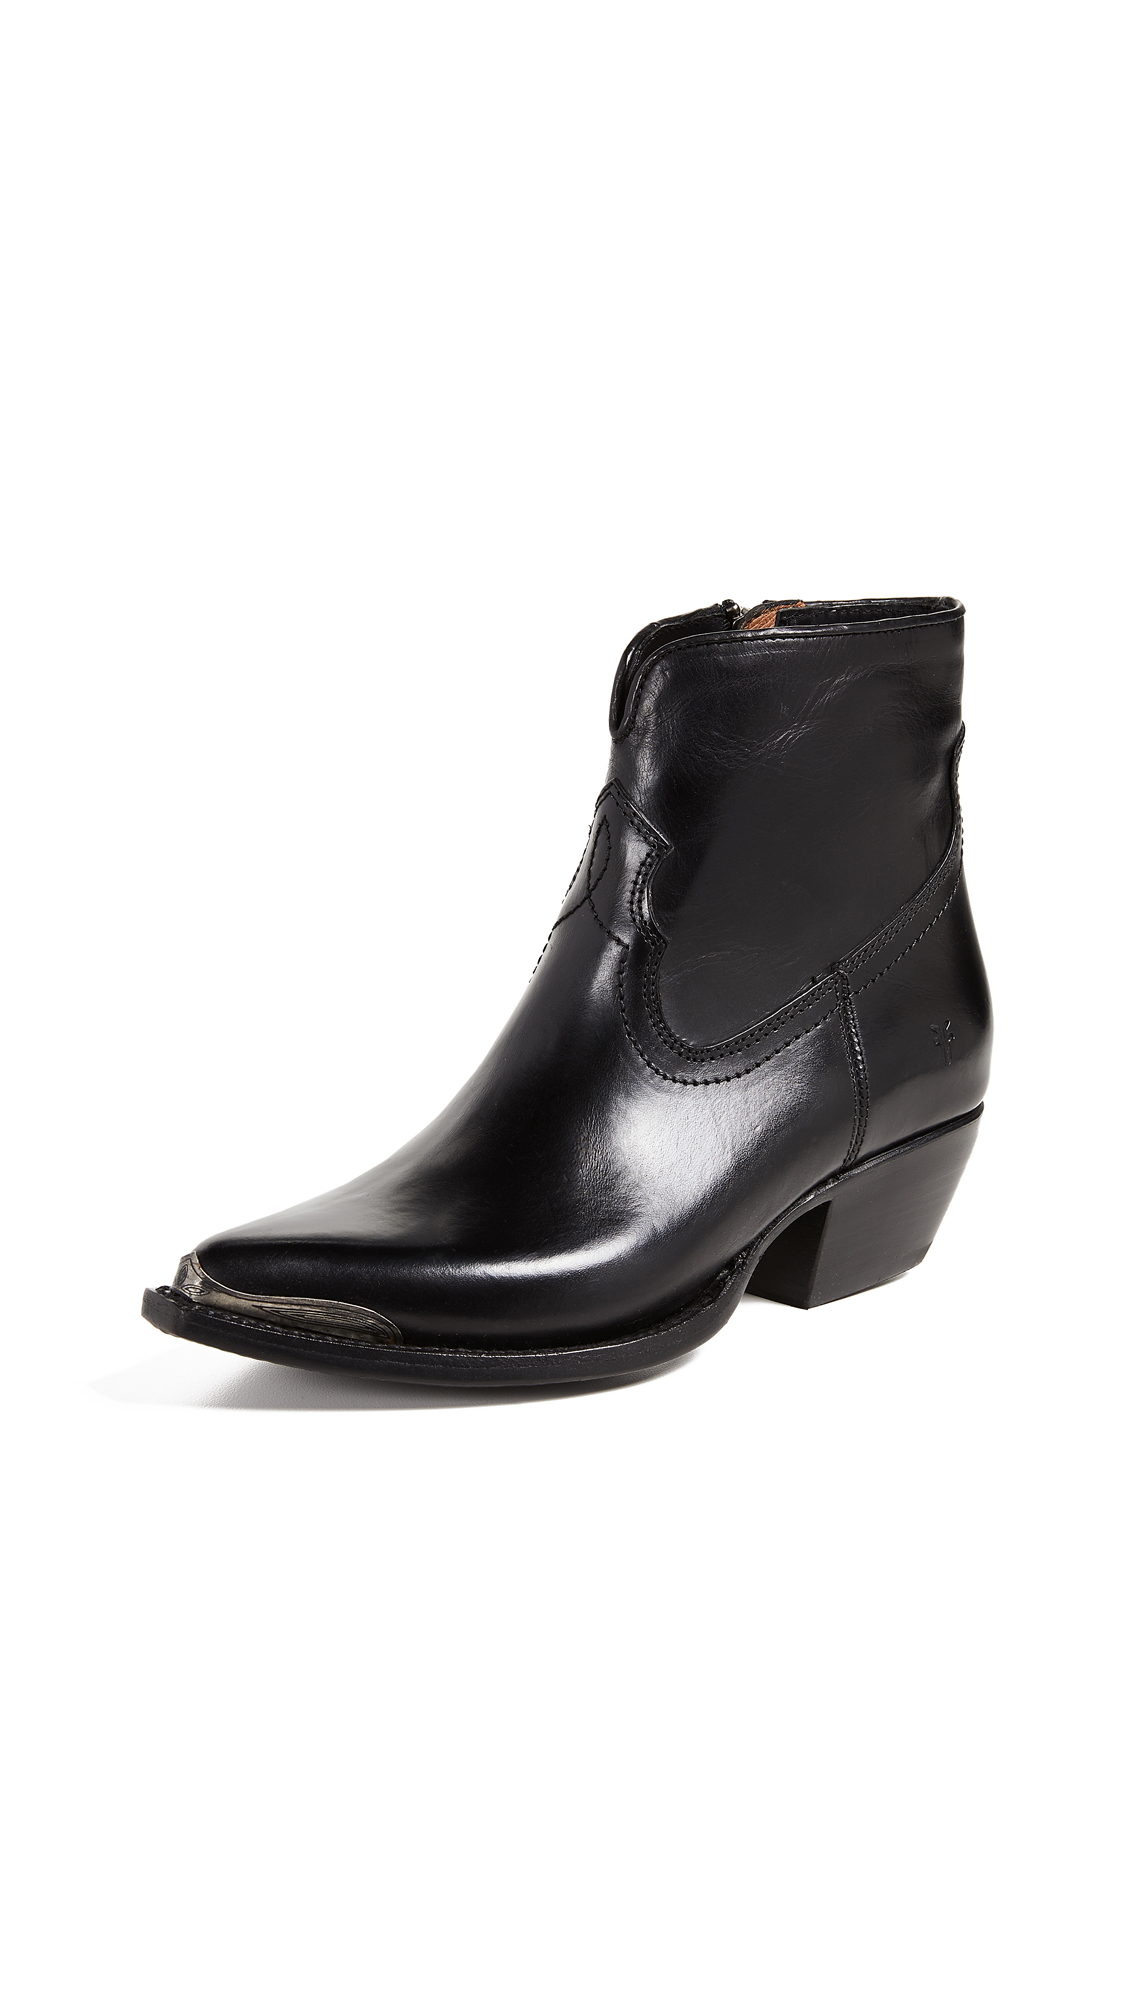 Frye Shane Tip Short Boots In Black